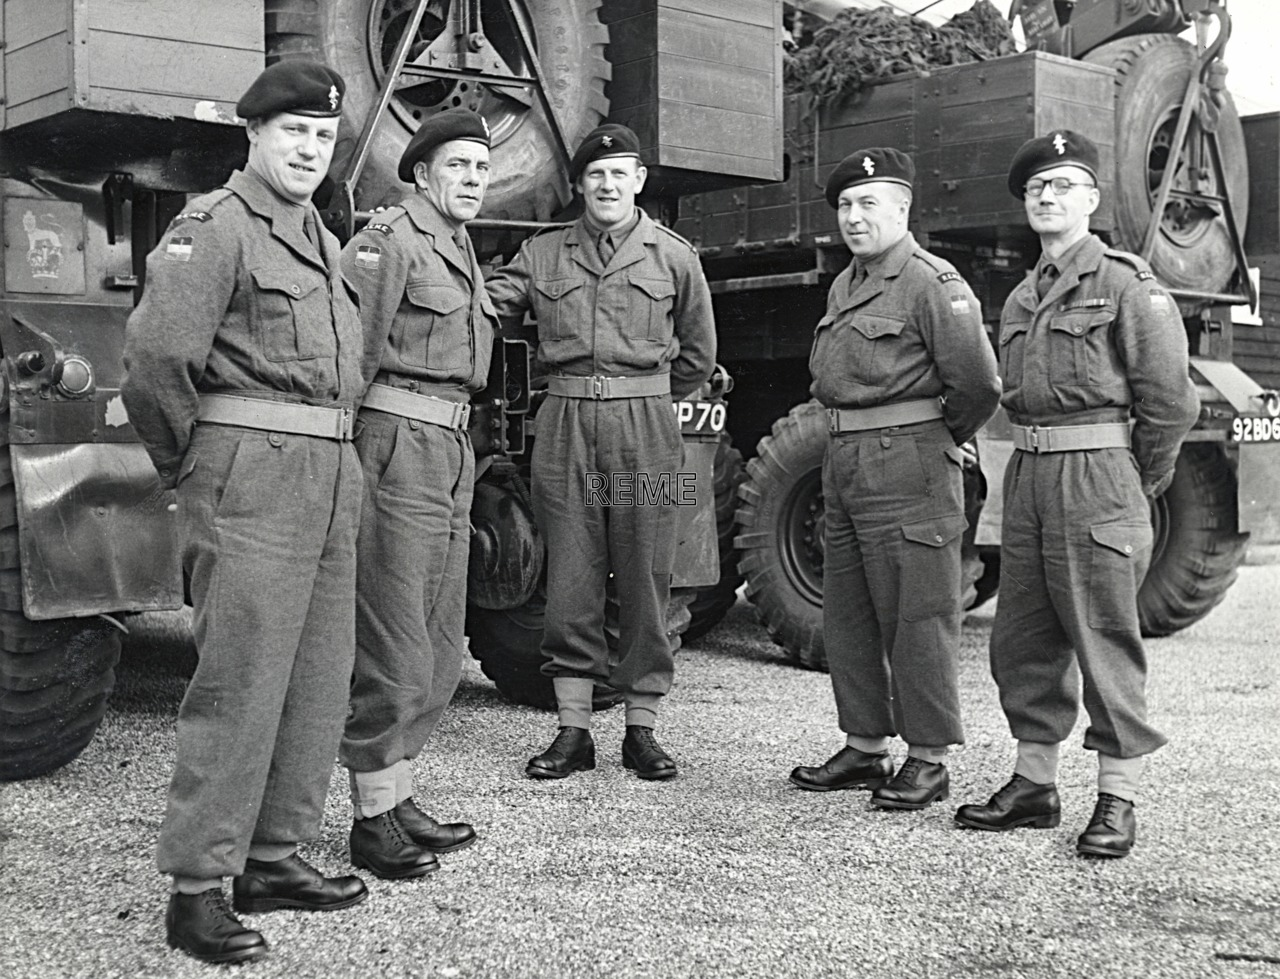 Five REME soldiers standing in front of two Scammells